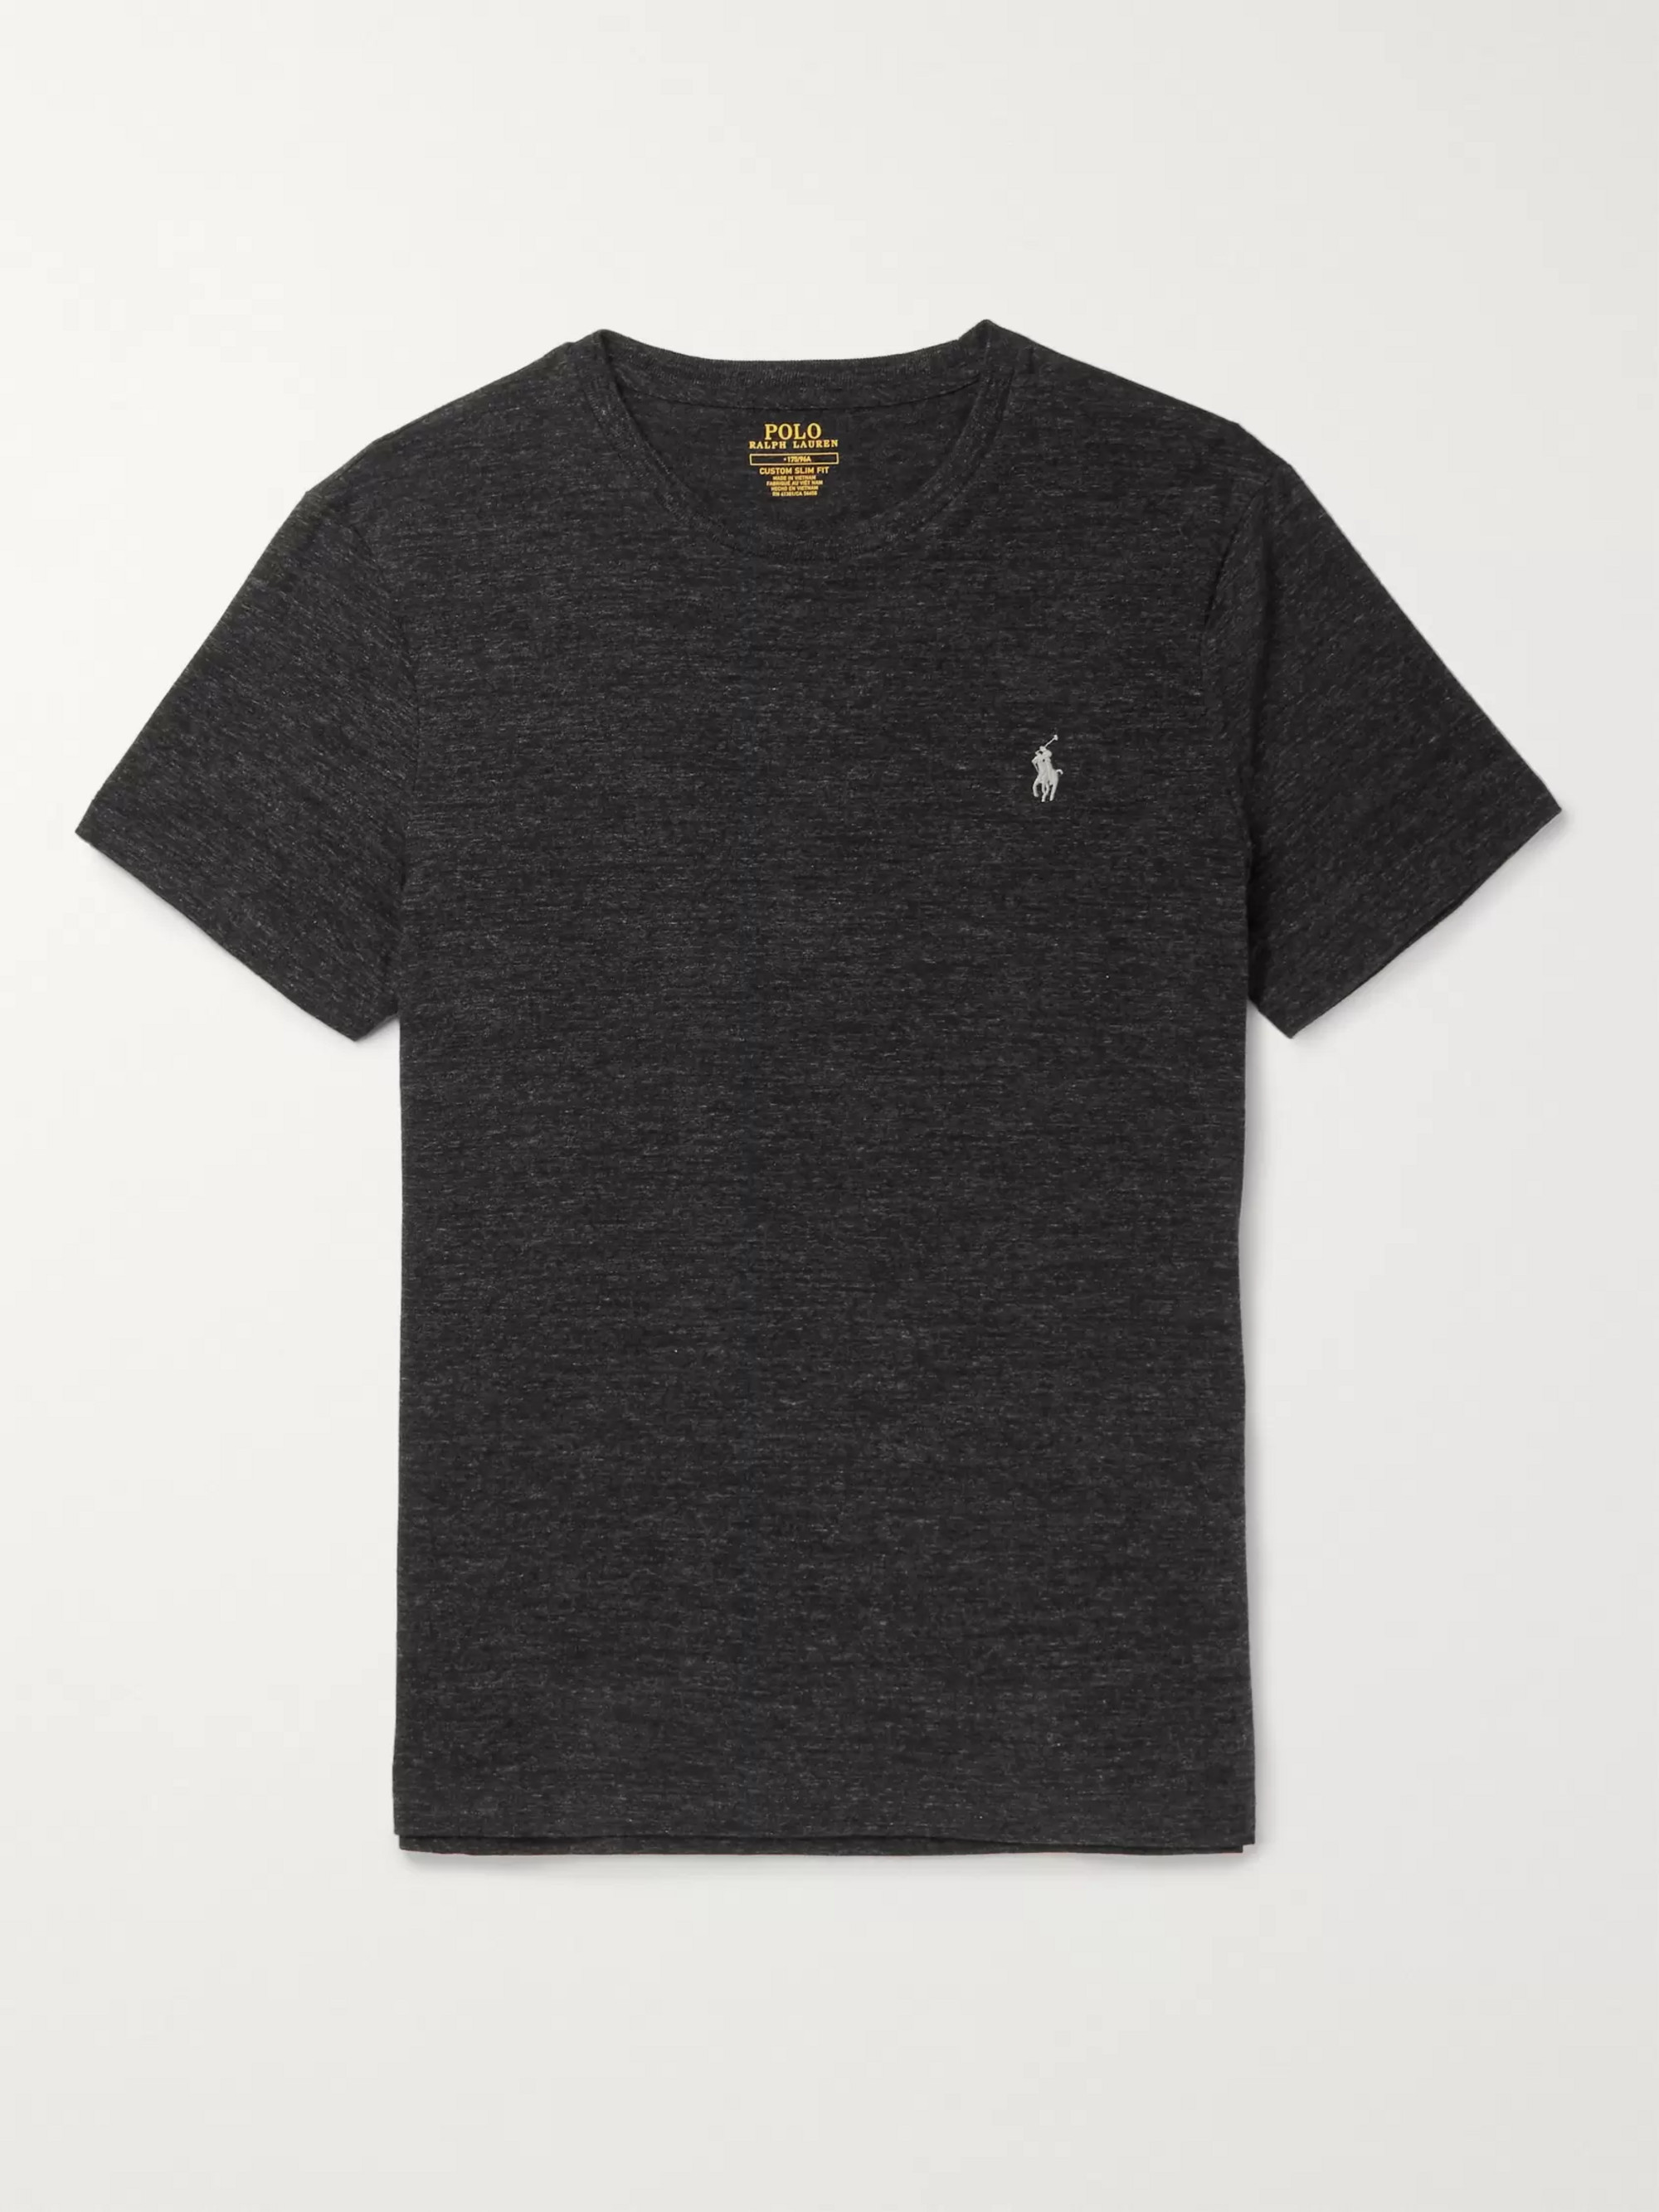 Polo Ralph Lauren Slim-Fit Mélange Cotton-Jersey T-Shirt